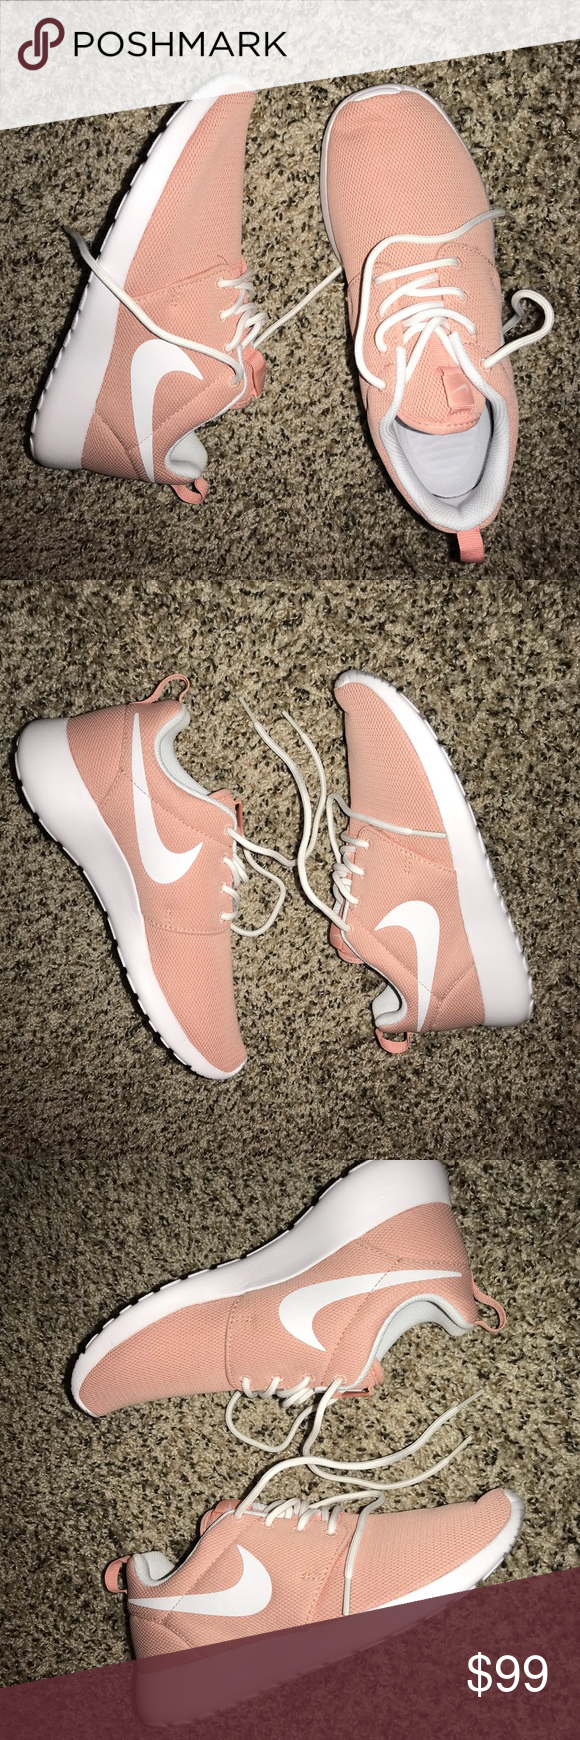 ede8b04e7835 NIKE ROSHE ONE - WOMEN S New with tags Selected Style  Coral Stardust White  Mesh